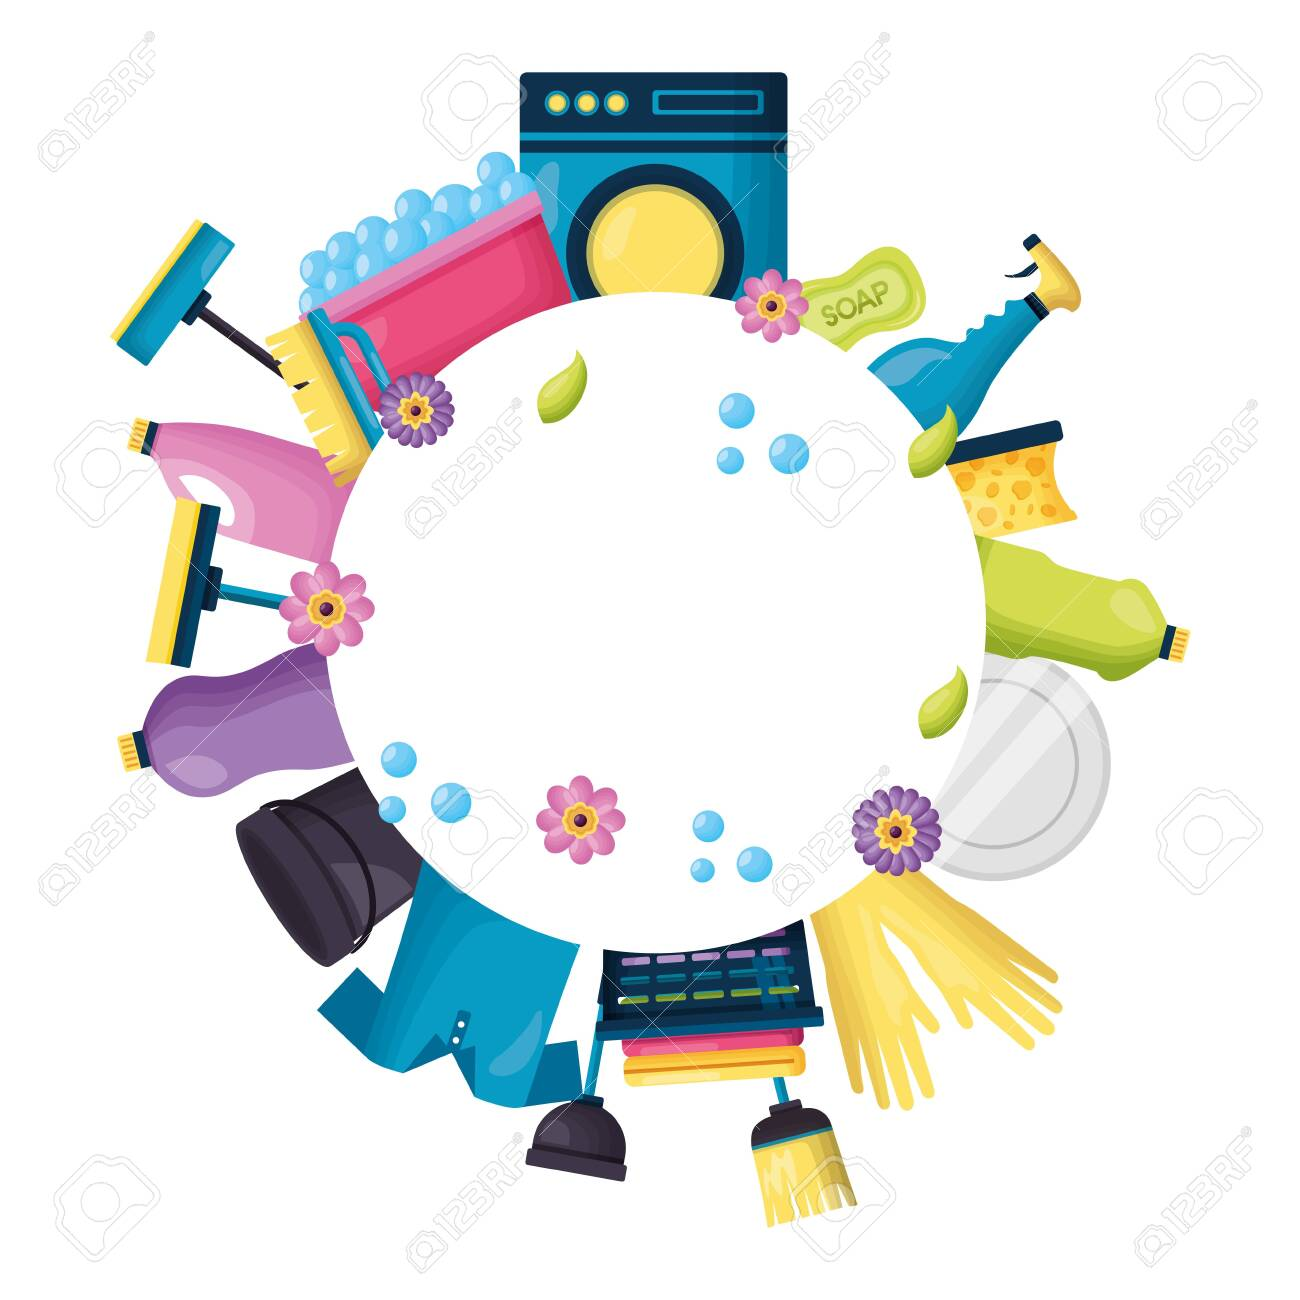 spring cleaning product equipment vector illustration vector illustration - 129501552